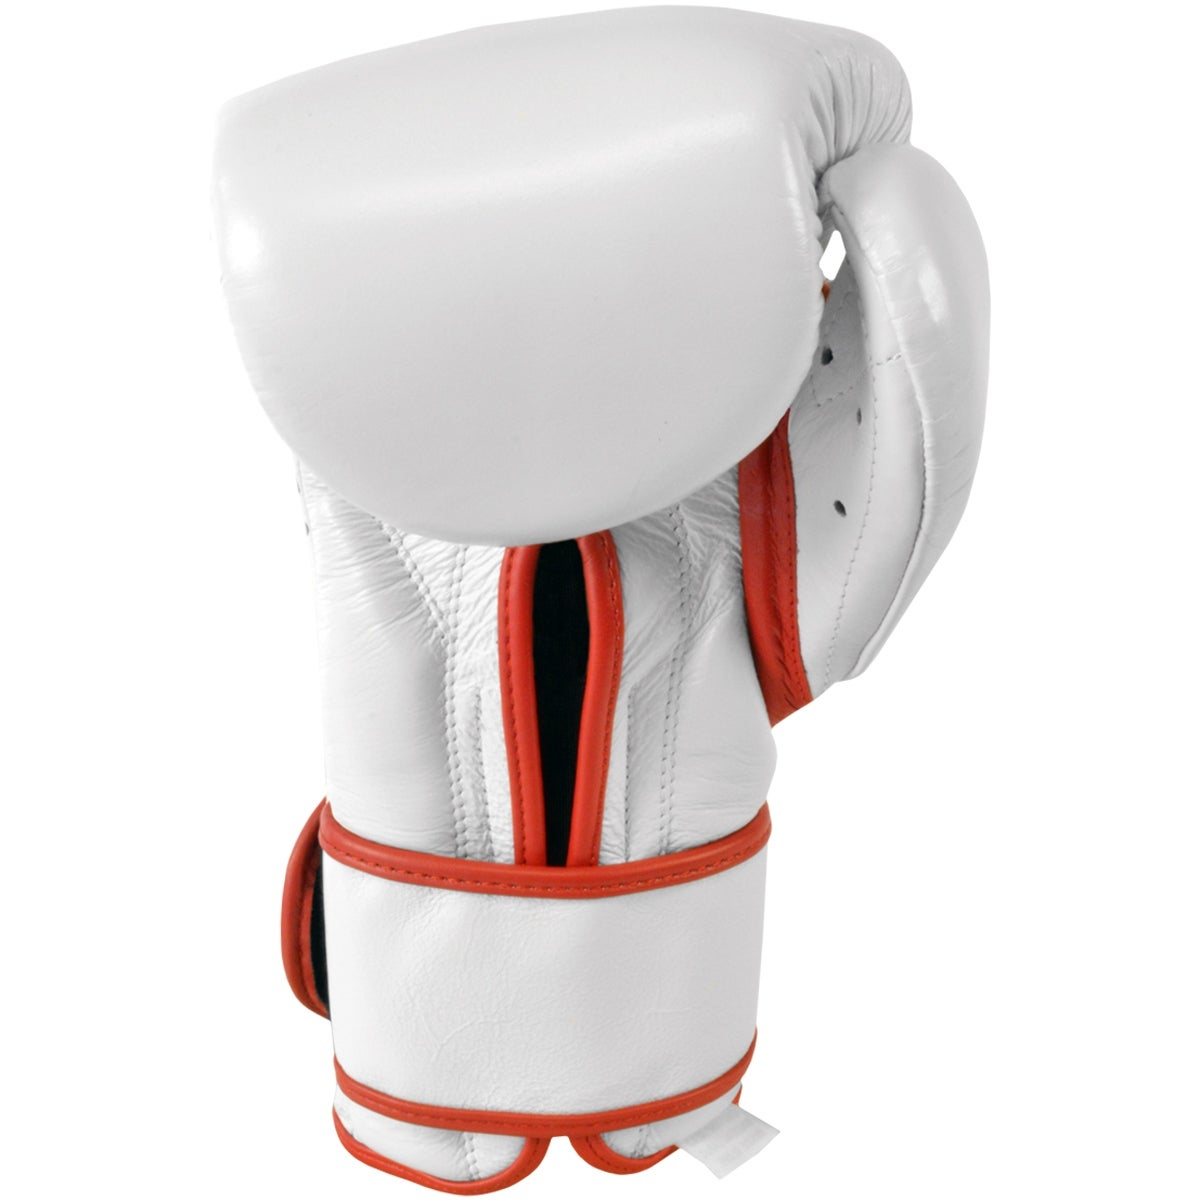 Mexican Flag Cleto Reyes Lace Up Hook and Loop Hybrid Boxing Gloves